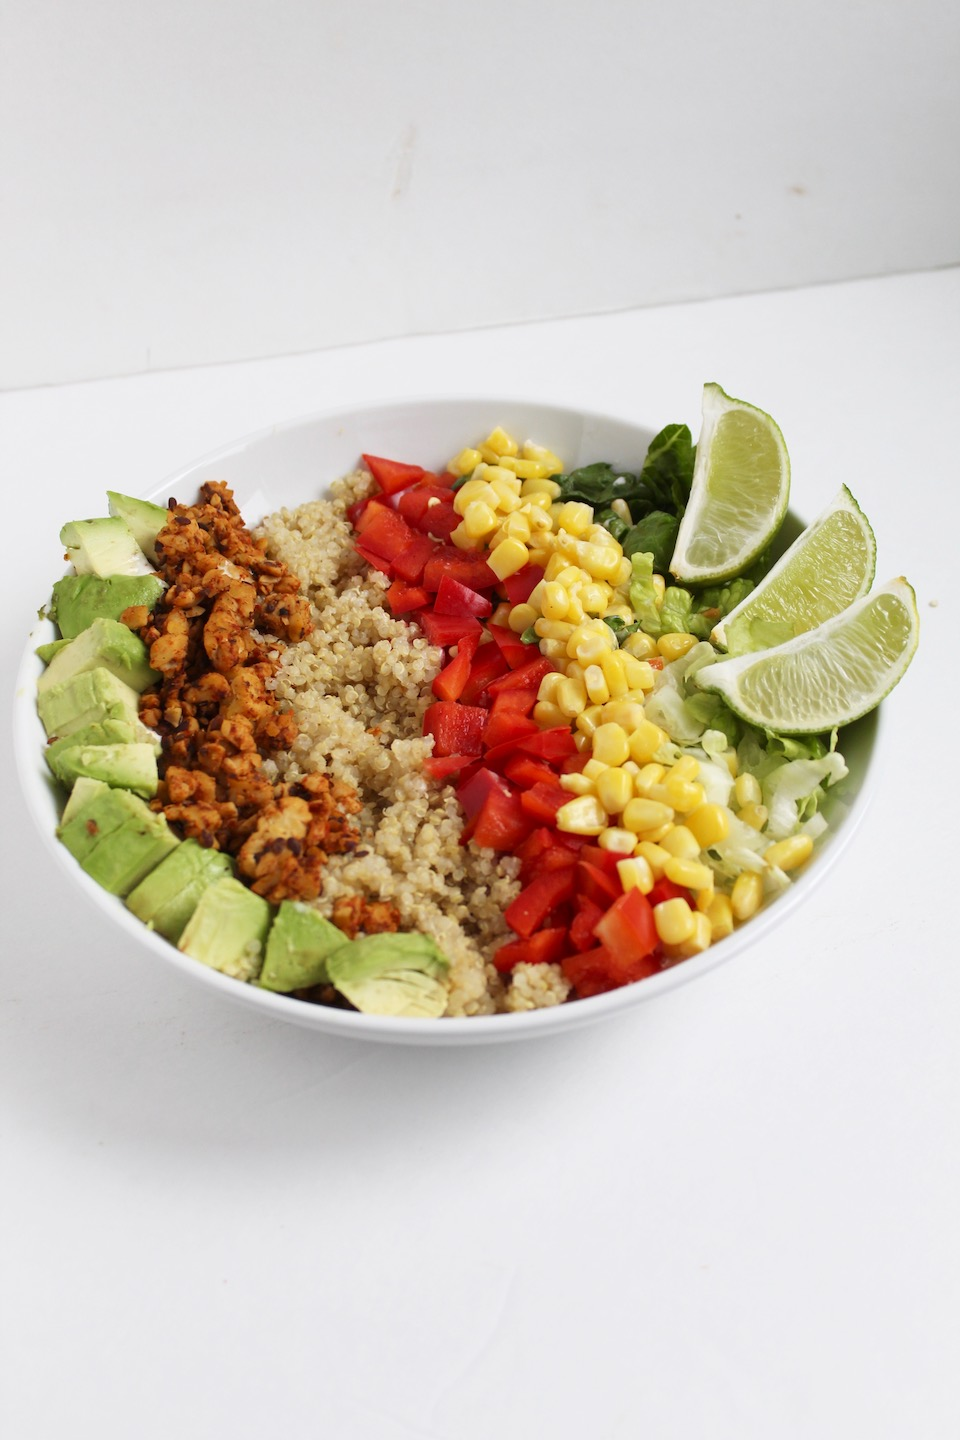 Vegan Tempeh Taco Bowl -- A protein-packed recipe made with quinoa, seasoned tempeh, and tons of veggies. Healthier (and cheaper) than takeout for lunch or dinner! | @sinfulnutrition #glutenfree